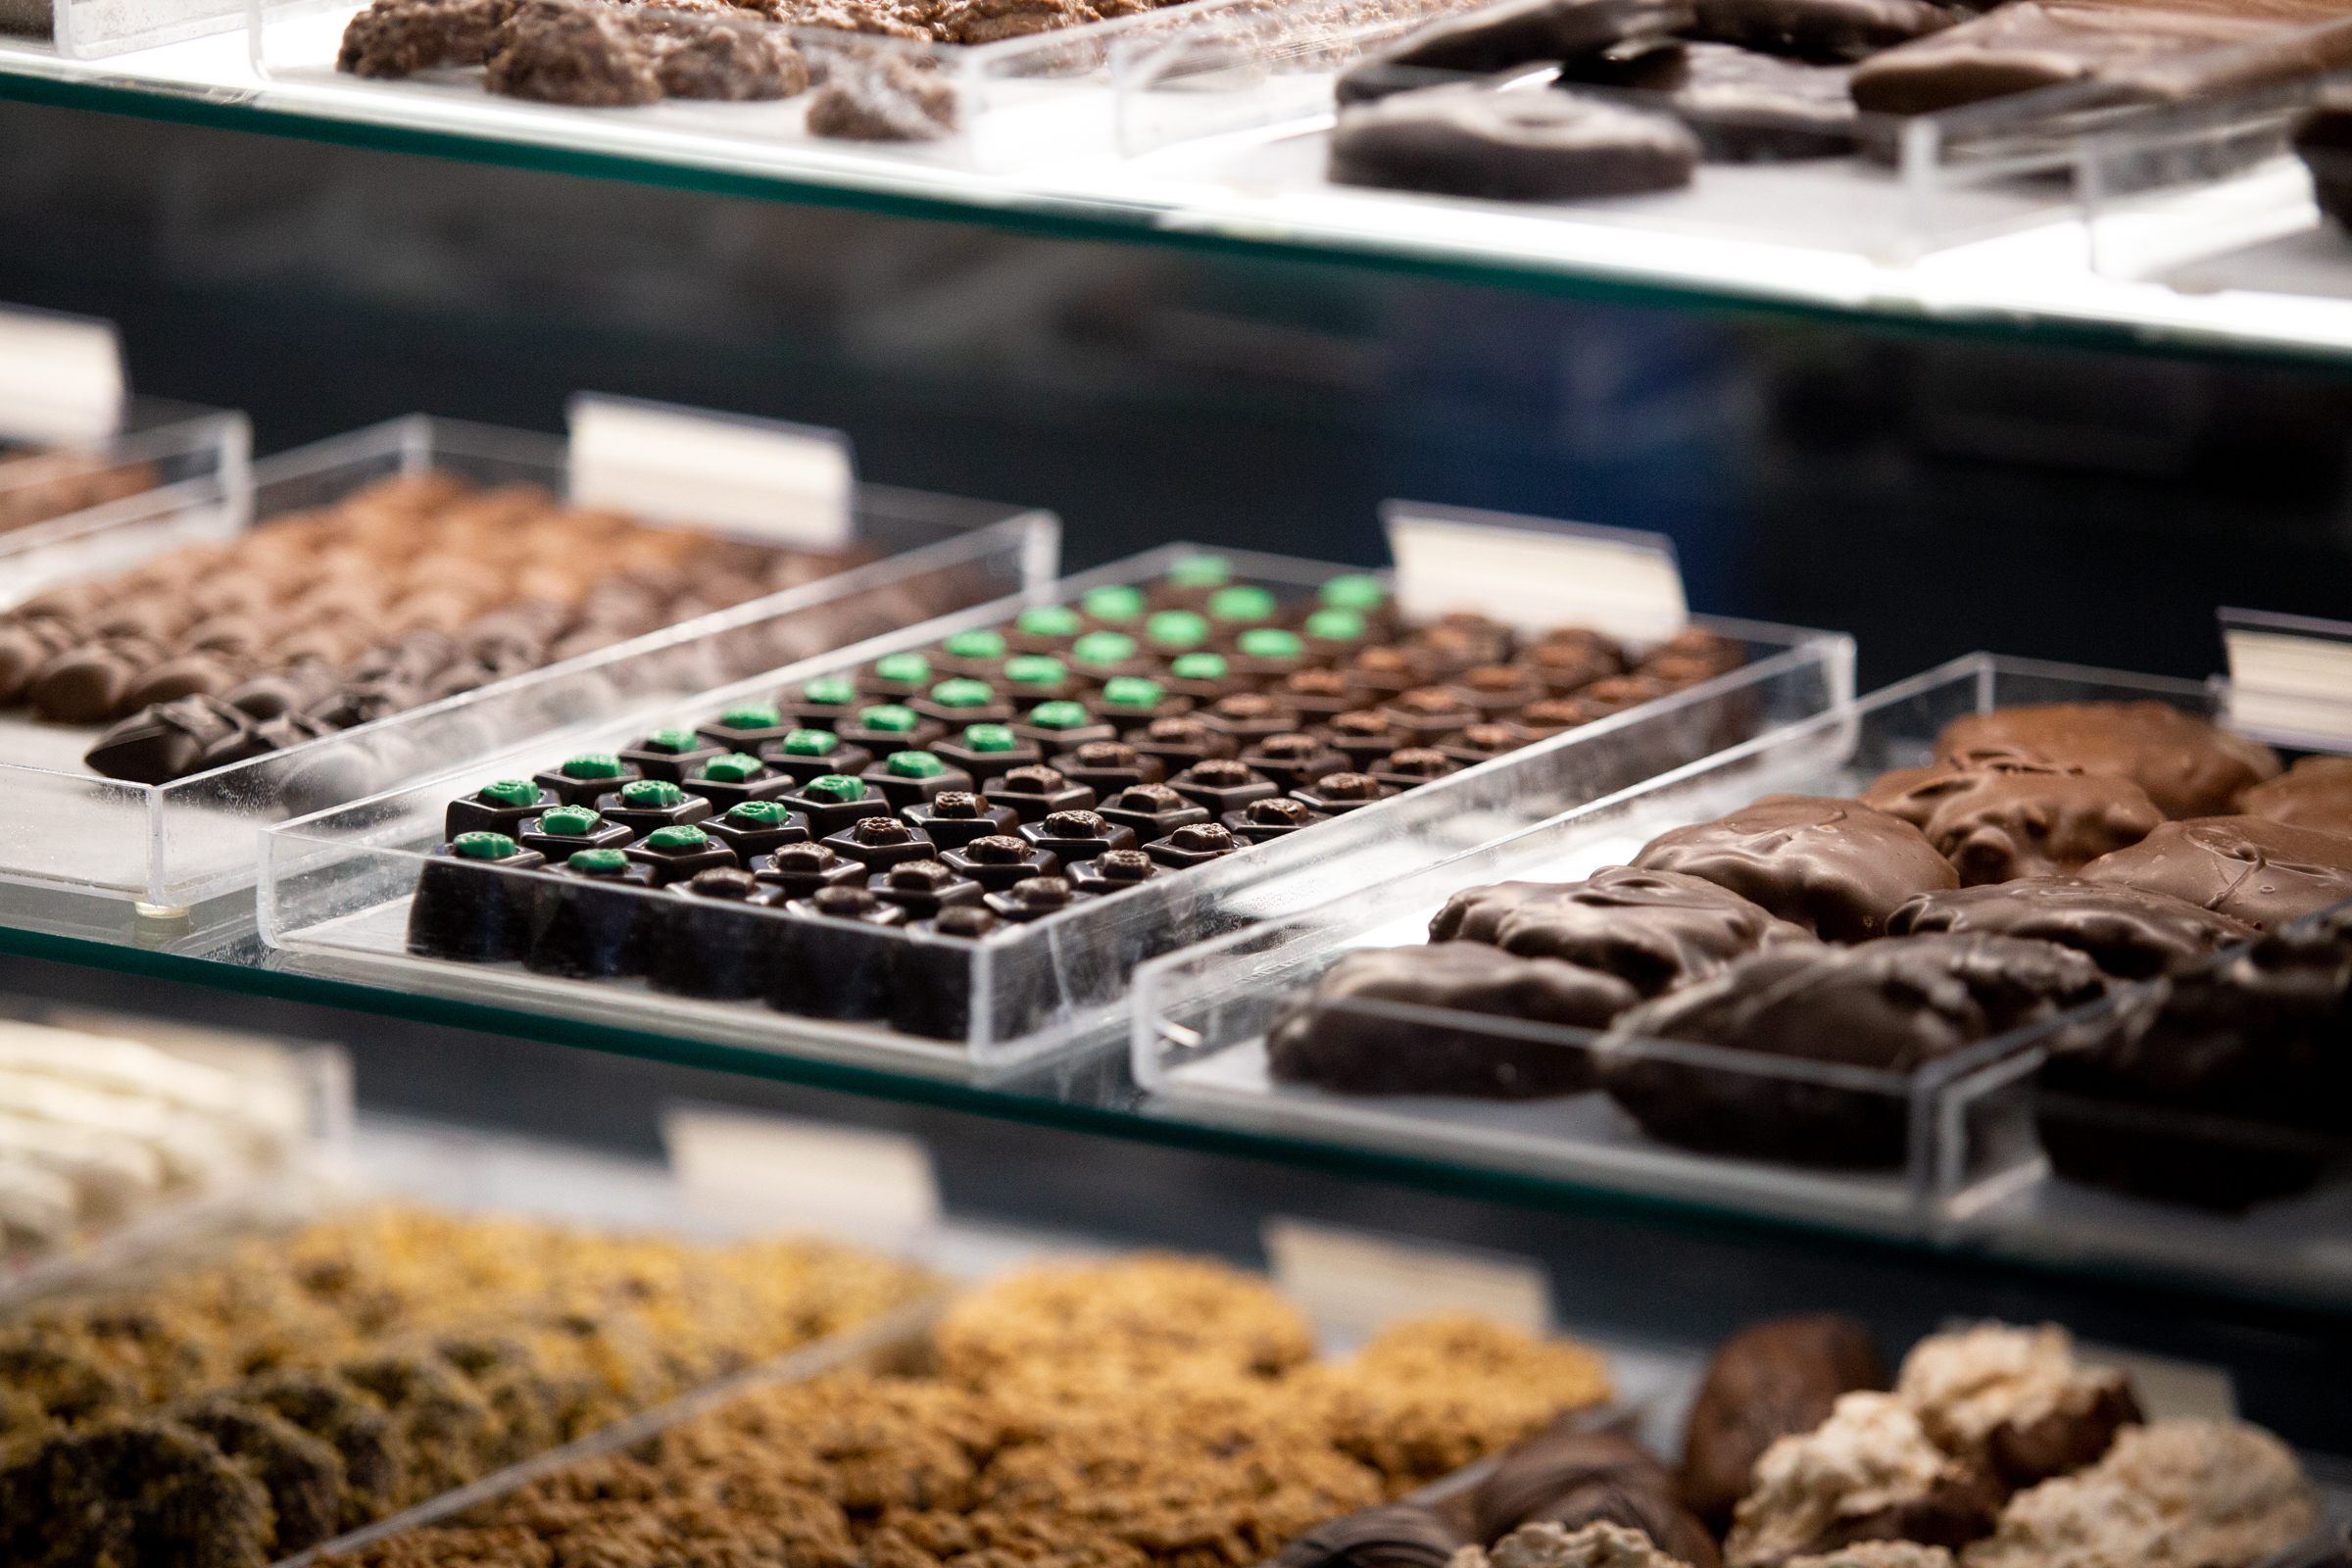 Chocolate and mint truffles from Asher's Chocolates is on display and for sale as part of The Philadelphia National Candy Gift and Gourmet Show at the Greater Philadelphia Expo Center in Oaks January 6, 2019.